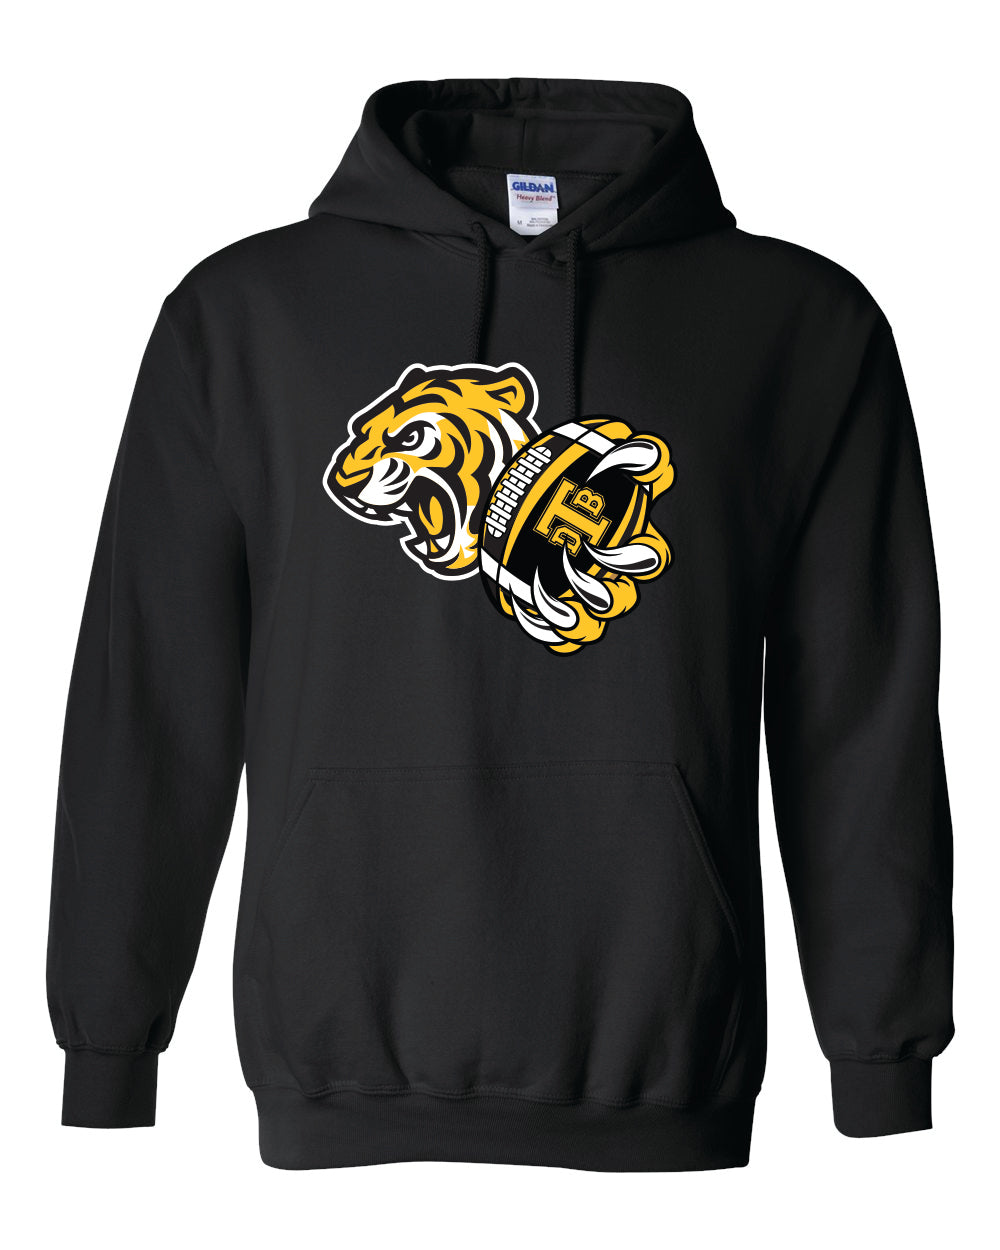 Don Bosco Tech - Hoodie Sweatshirt TIGER